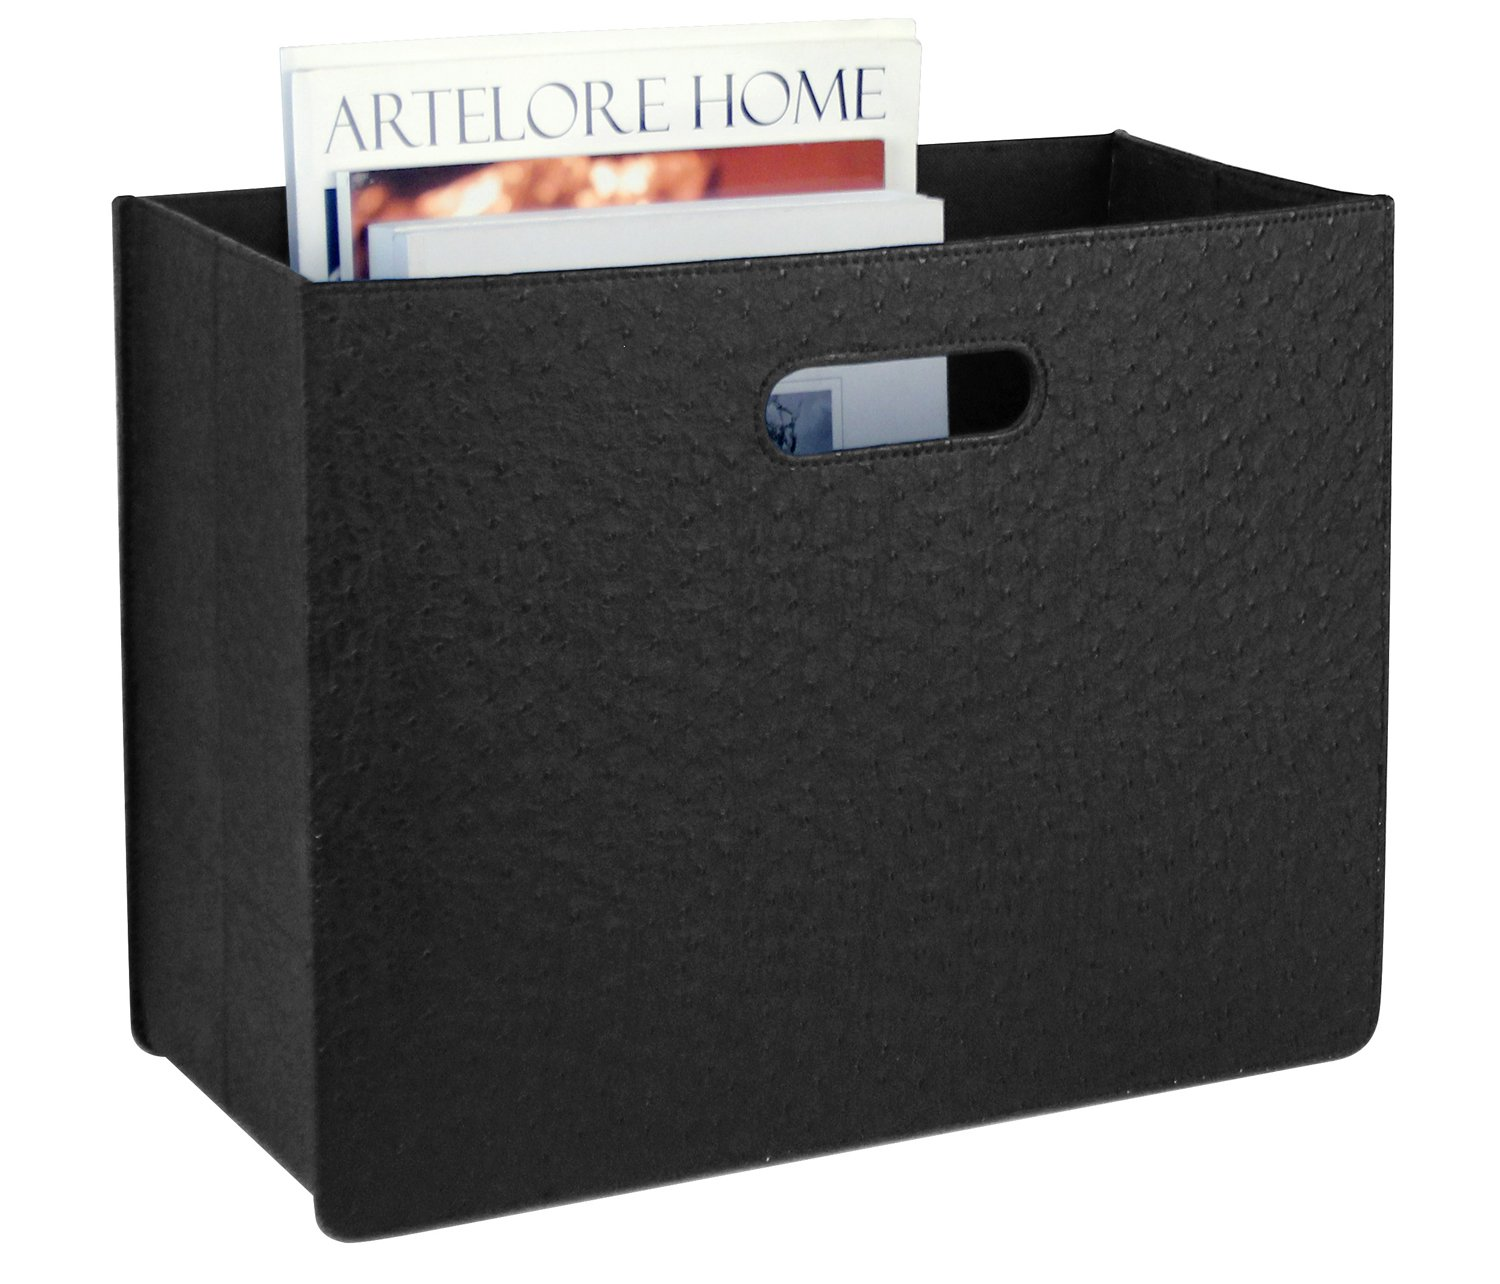 Magazine Basket Holder Rack, Magazine Holder with Handle, Foldable Newspaper Storage Bin Organizer, Black Magazine Basket and Storage Use for Reception Desk, Coffee Side Table, 15.8x7.3x11.8 inches